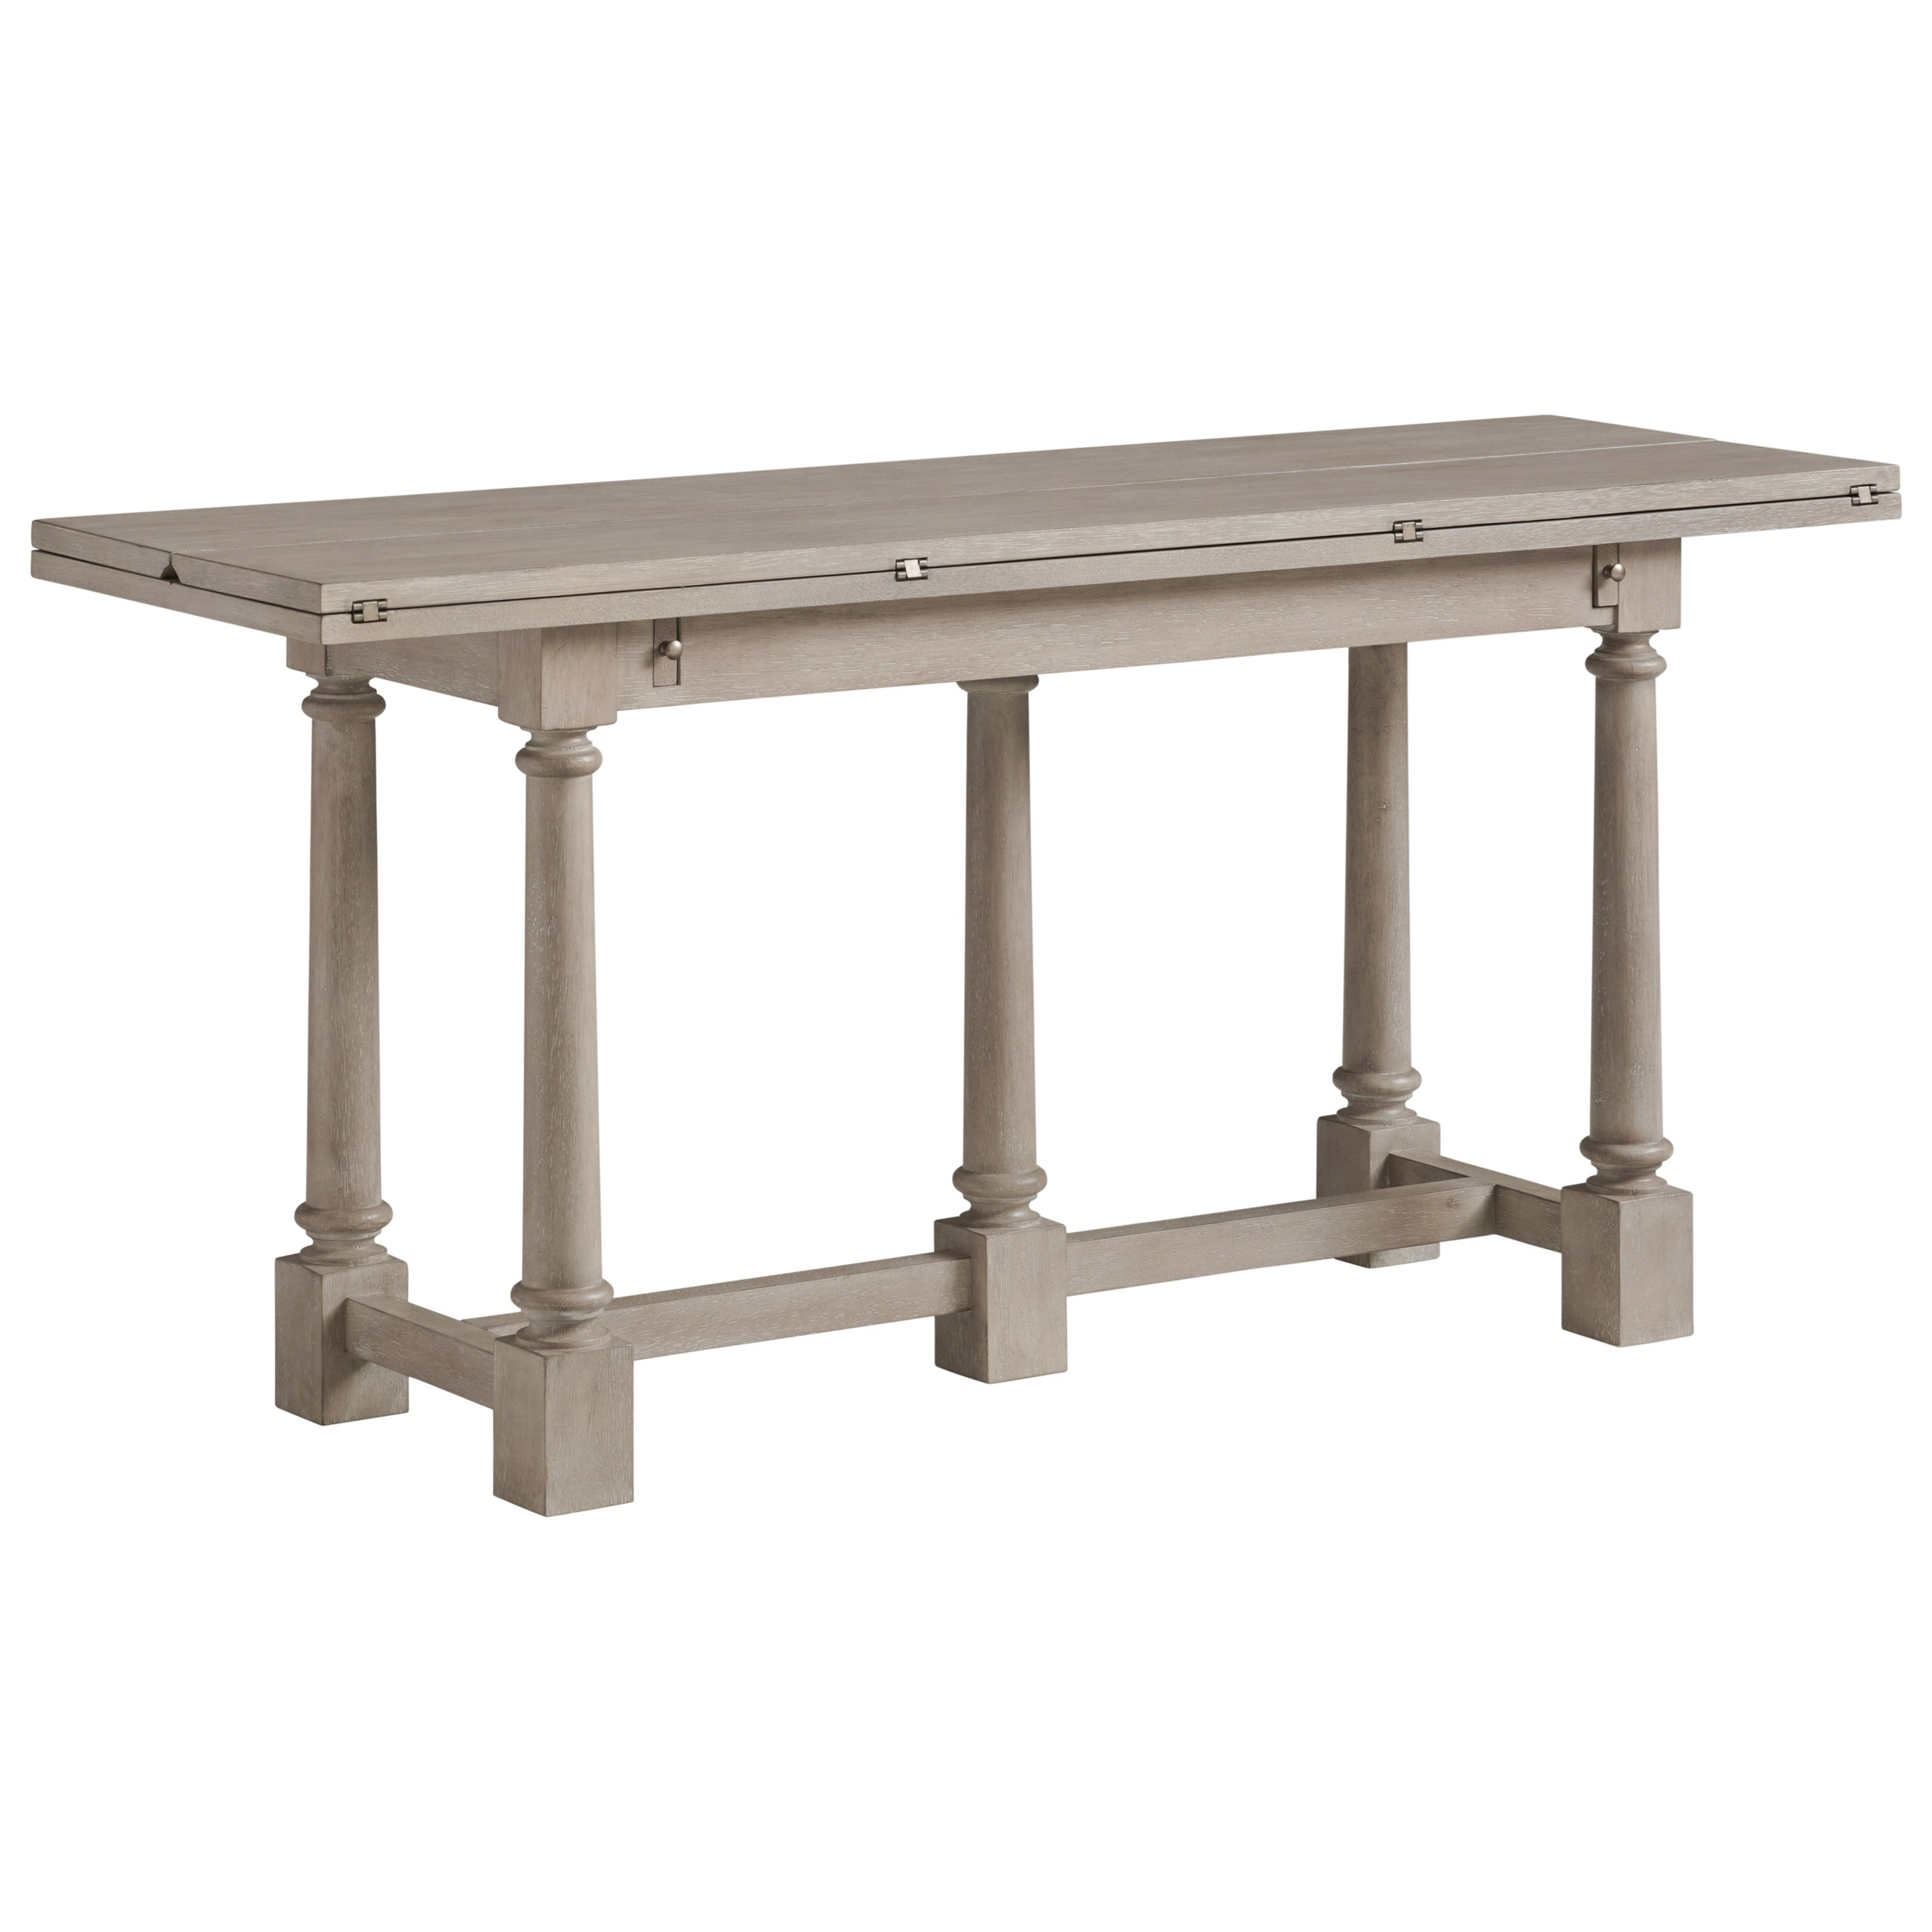 Malibu Andalusia Flip-Top Console by Barclay Butera at Baer's Furniture